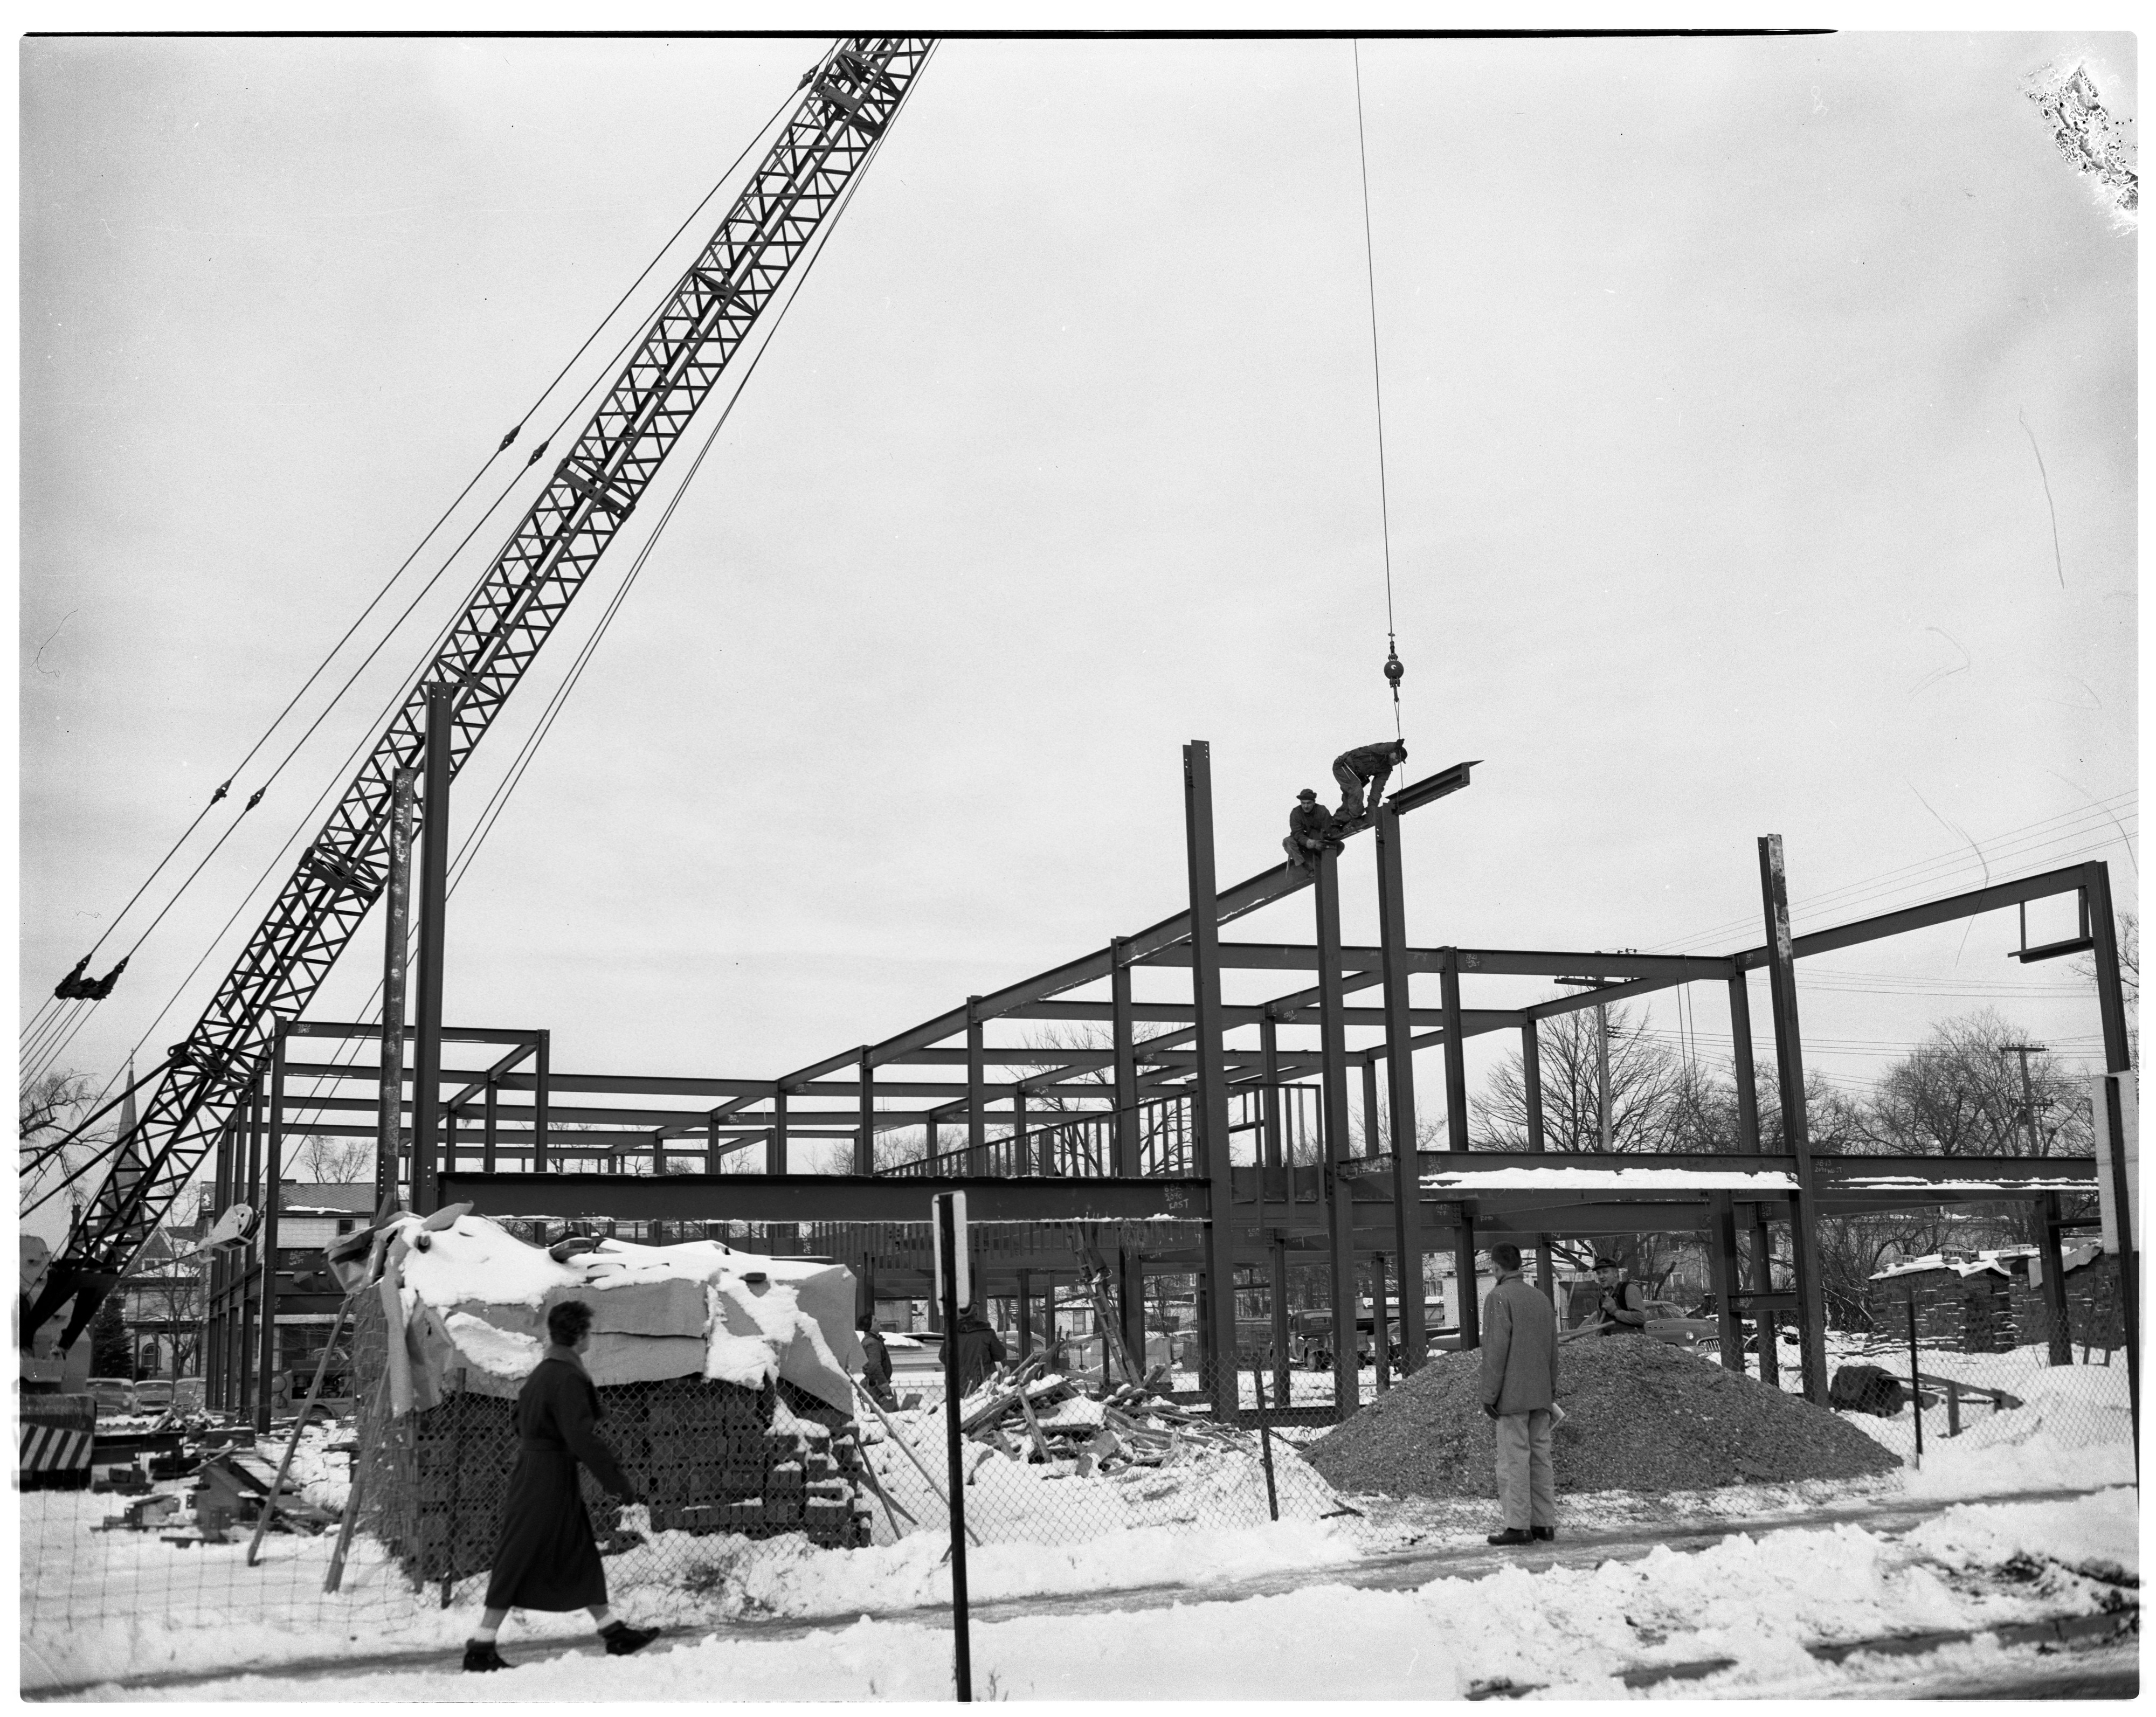 Library Framing Going Up, E. William St. and Fifth Ave., January 1957 image